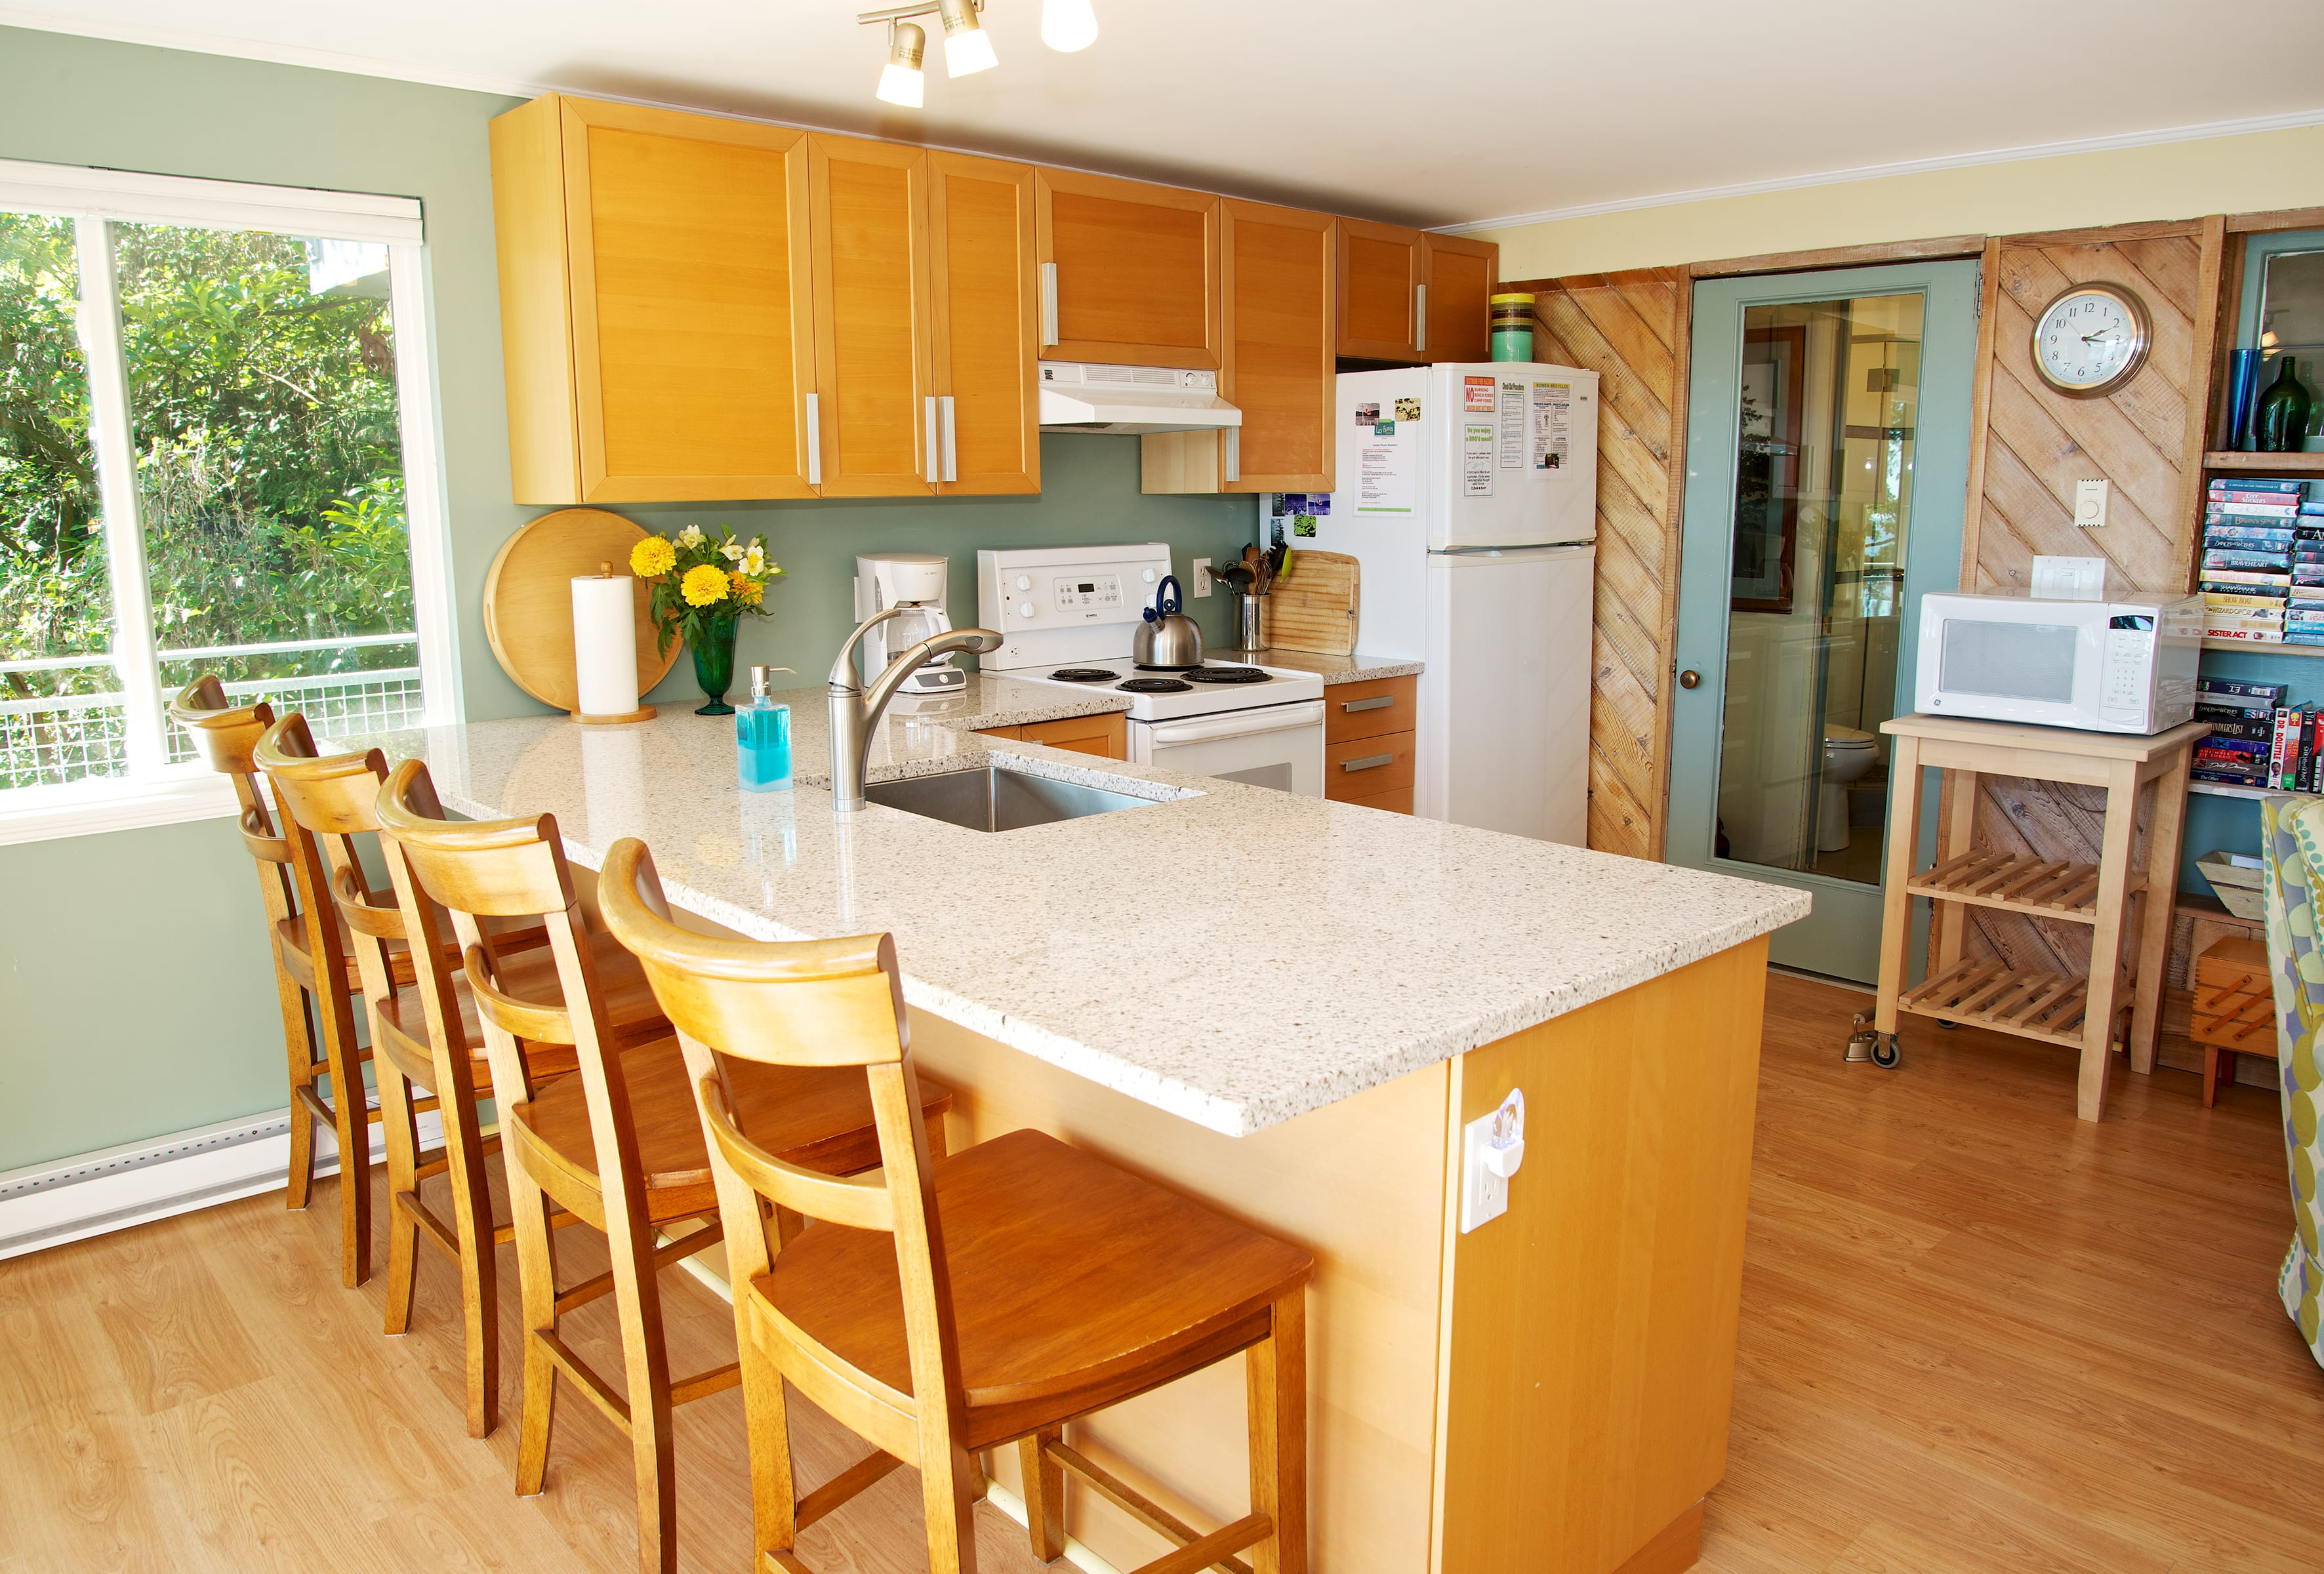 kitchen w granite counters, dishwasher fully stock (1)